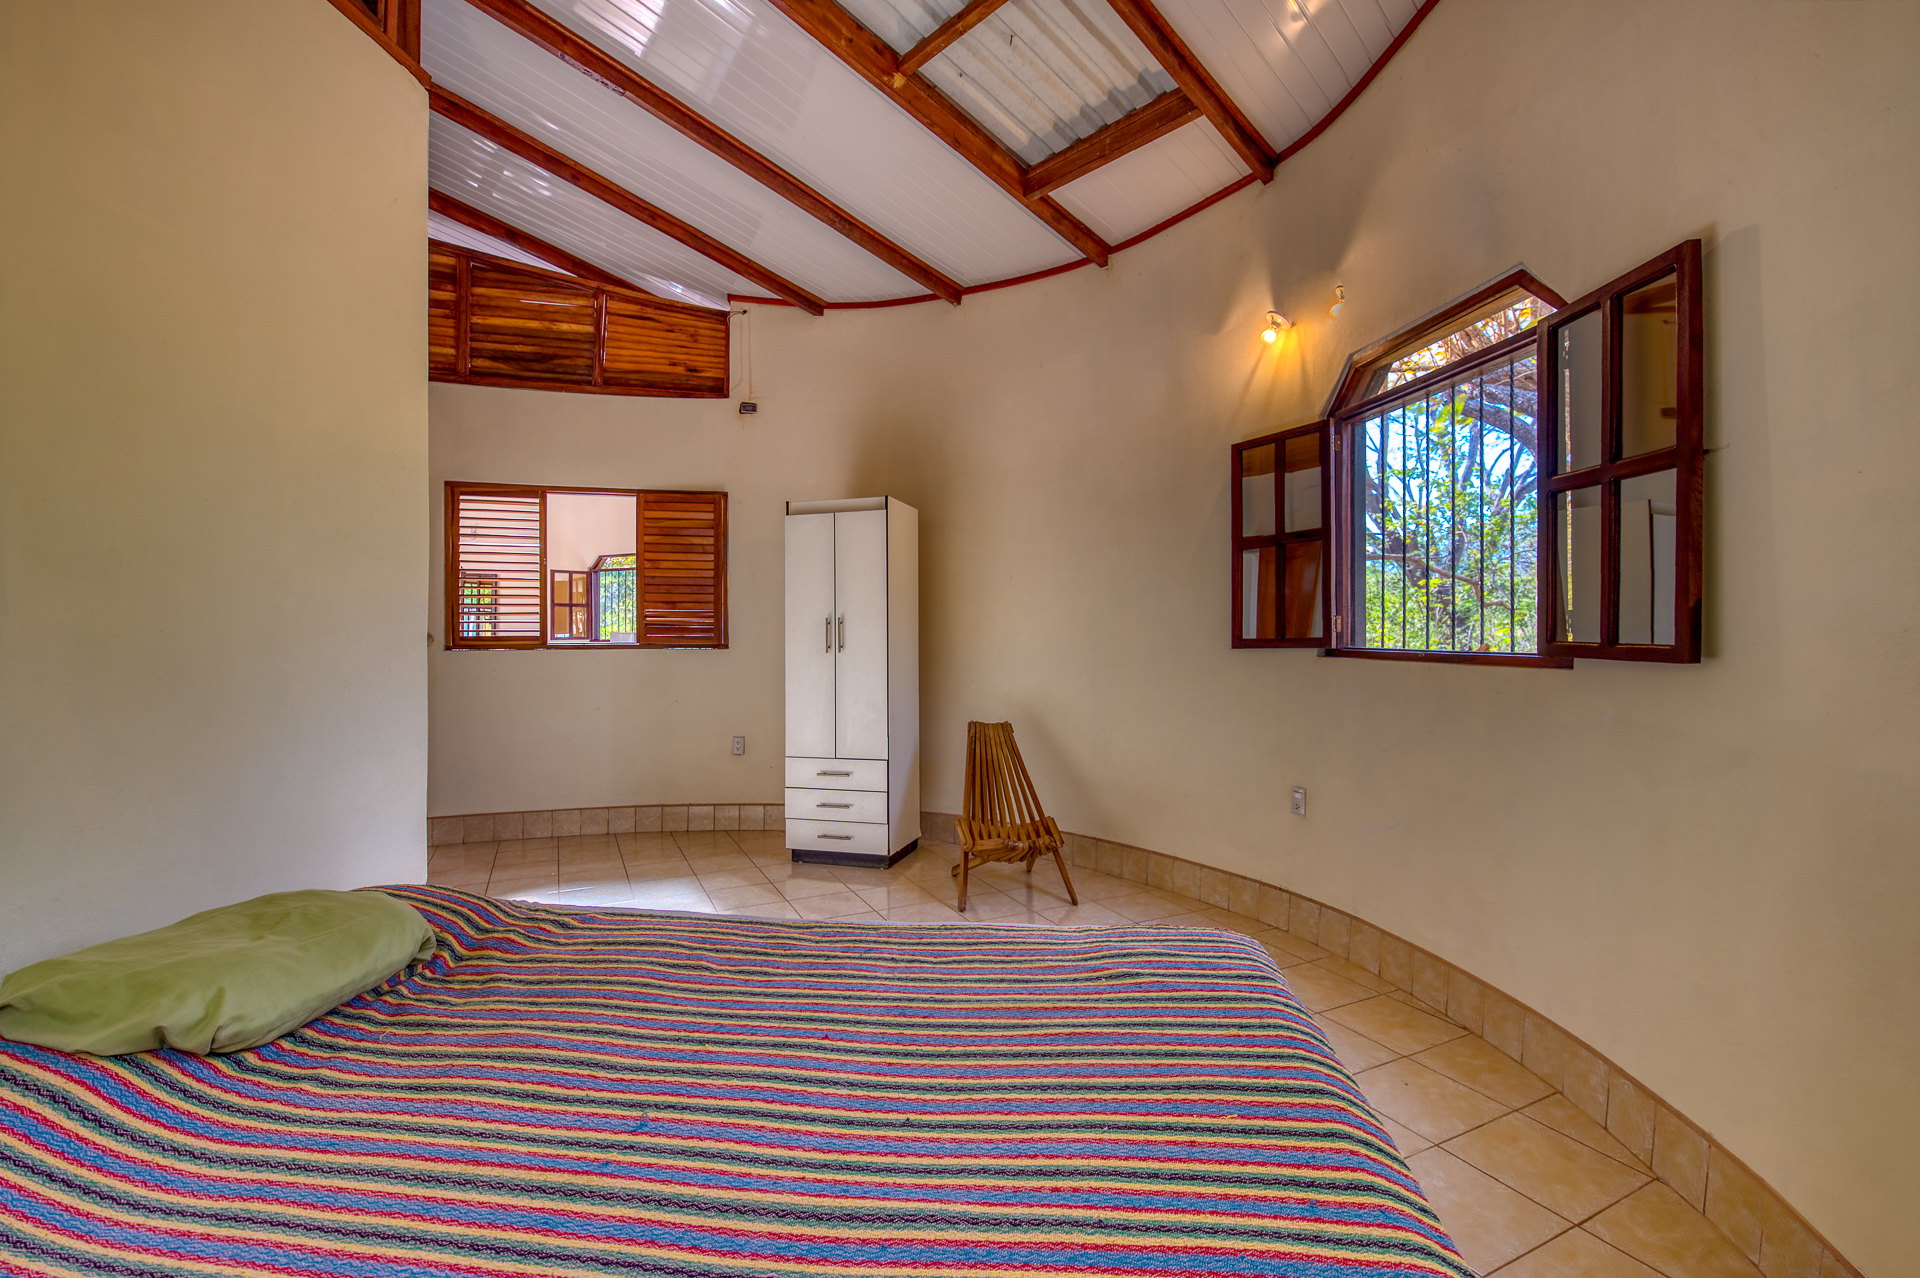 https://property-nicaragua.com/pedrodev/wp-content/uploads/2019/08/Quaint-Home-in-Nature-with-Rental-Units-San-Juan-del-Sur-Real-Estate-6.jpg